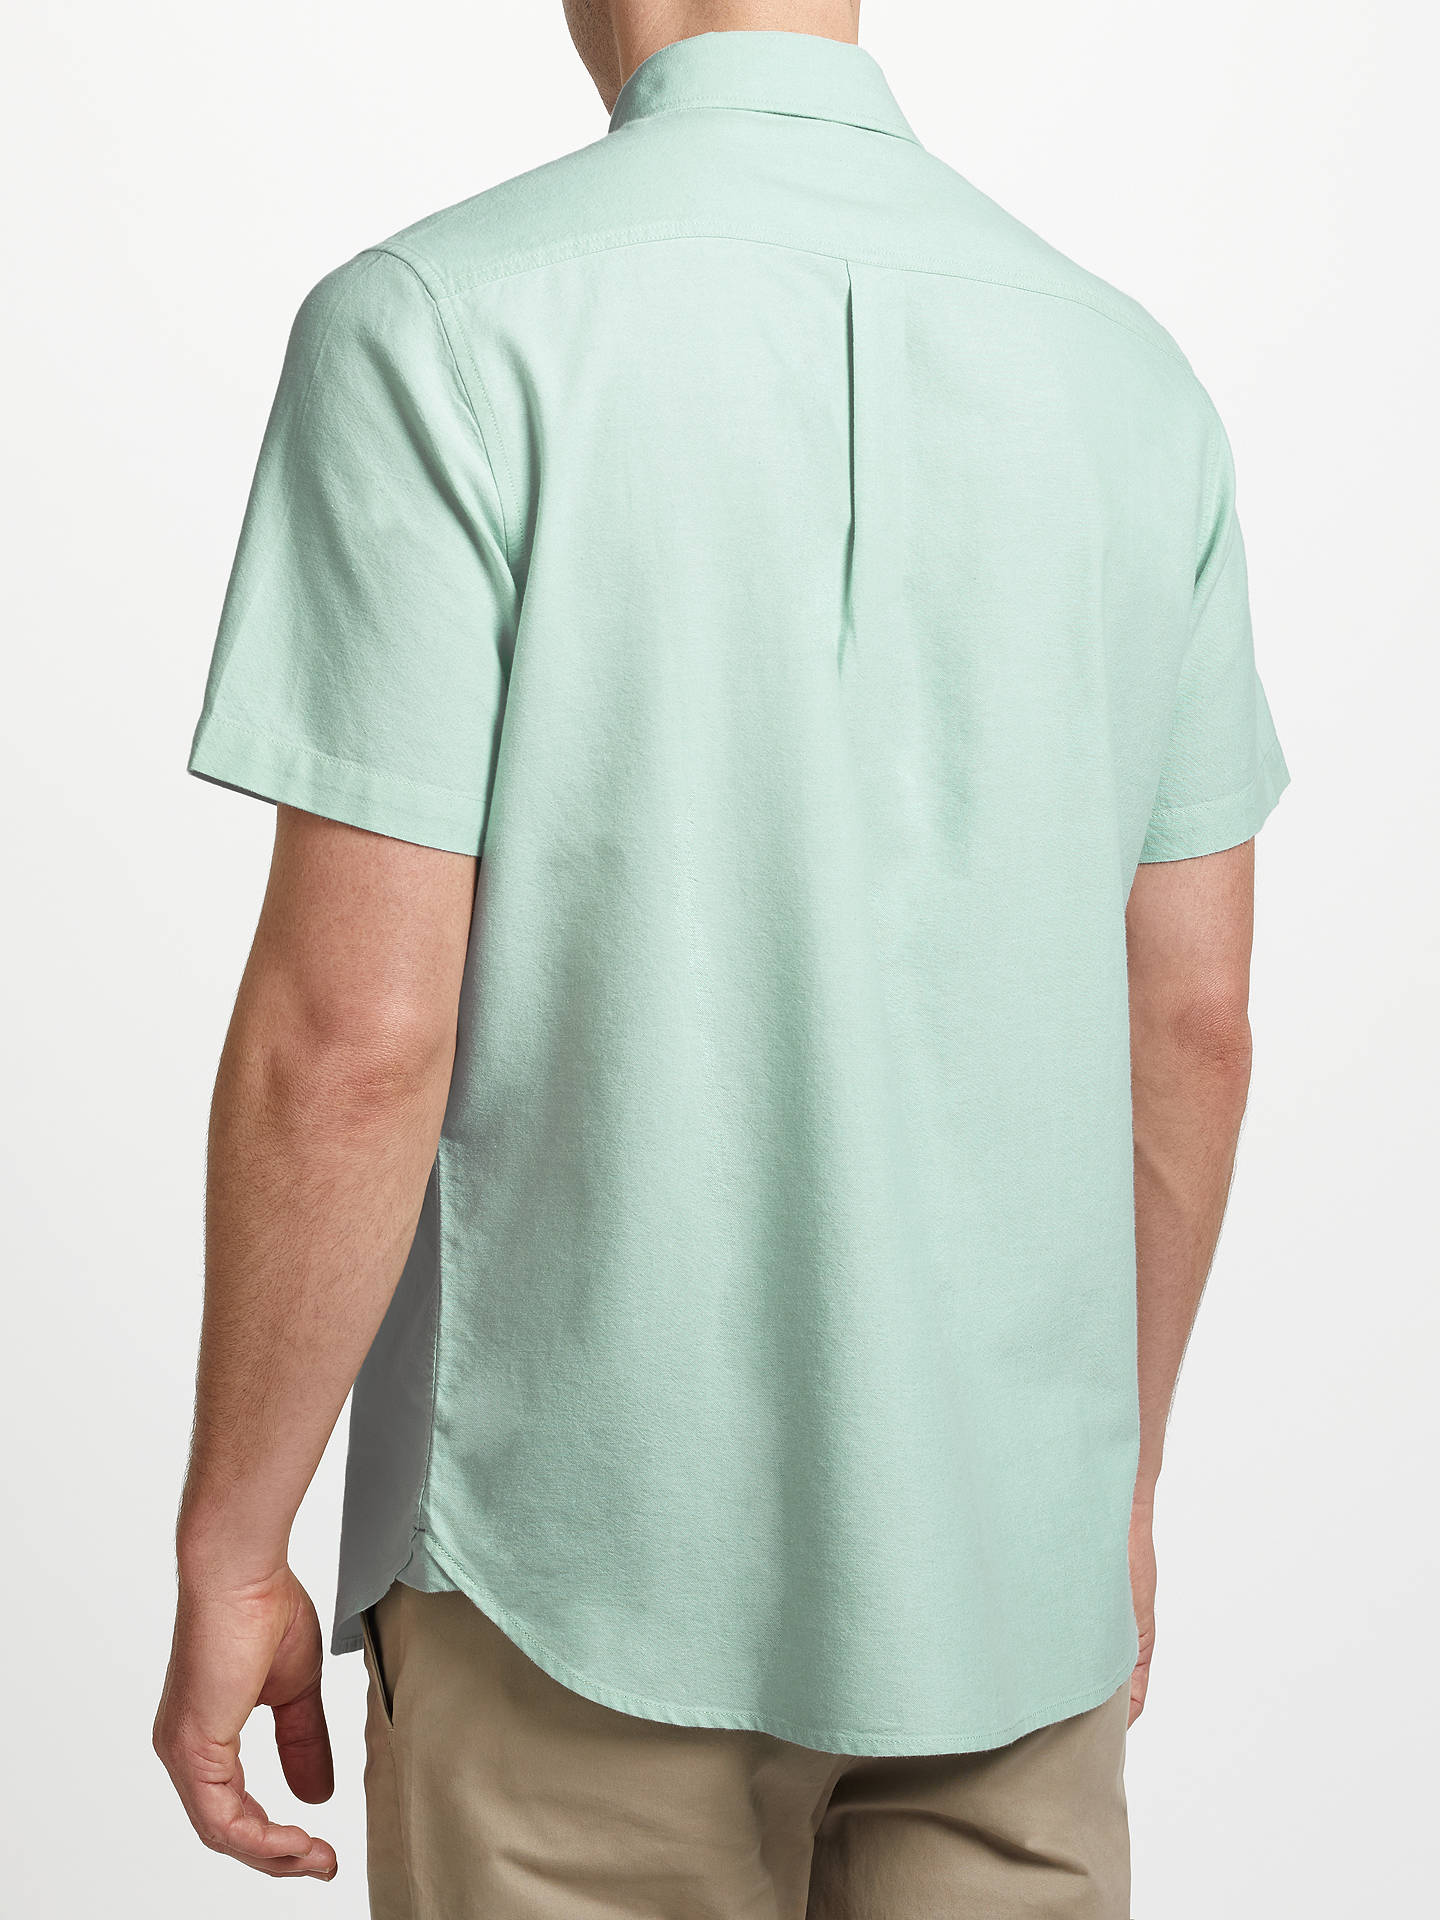 BuyJohn Lewis & Partners Cotton Oxford Short Sleeve Shirt, Green, S Online at johnlewis.com